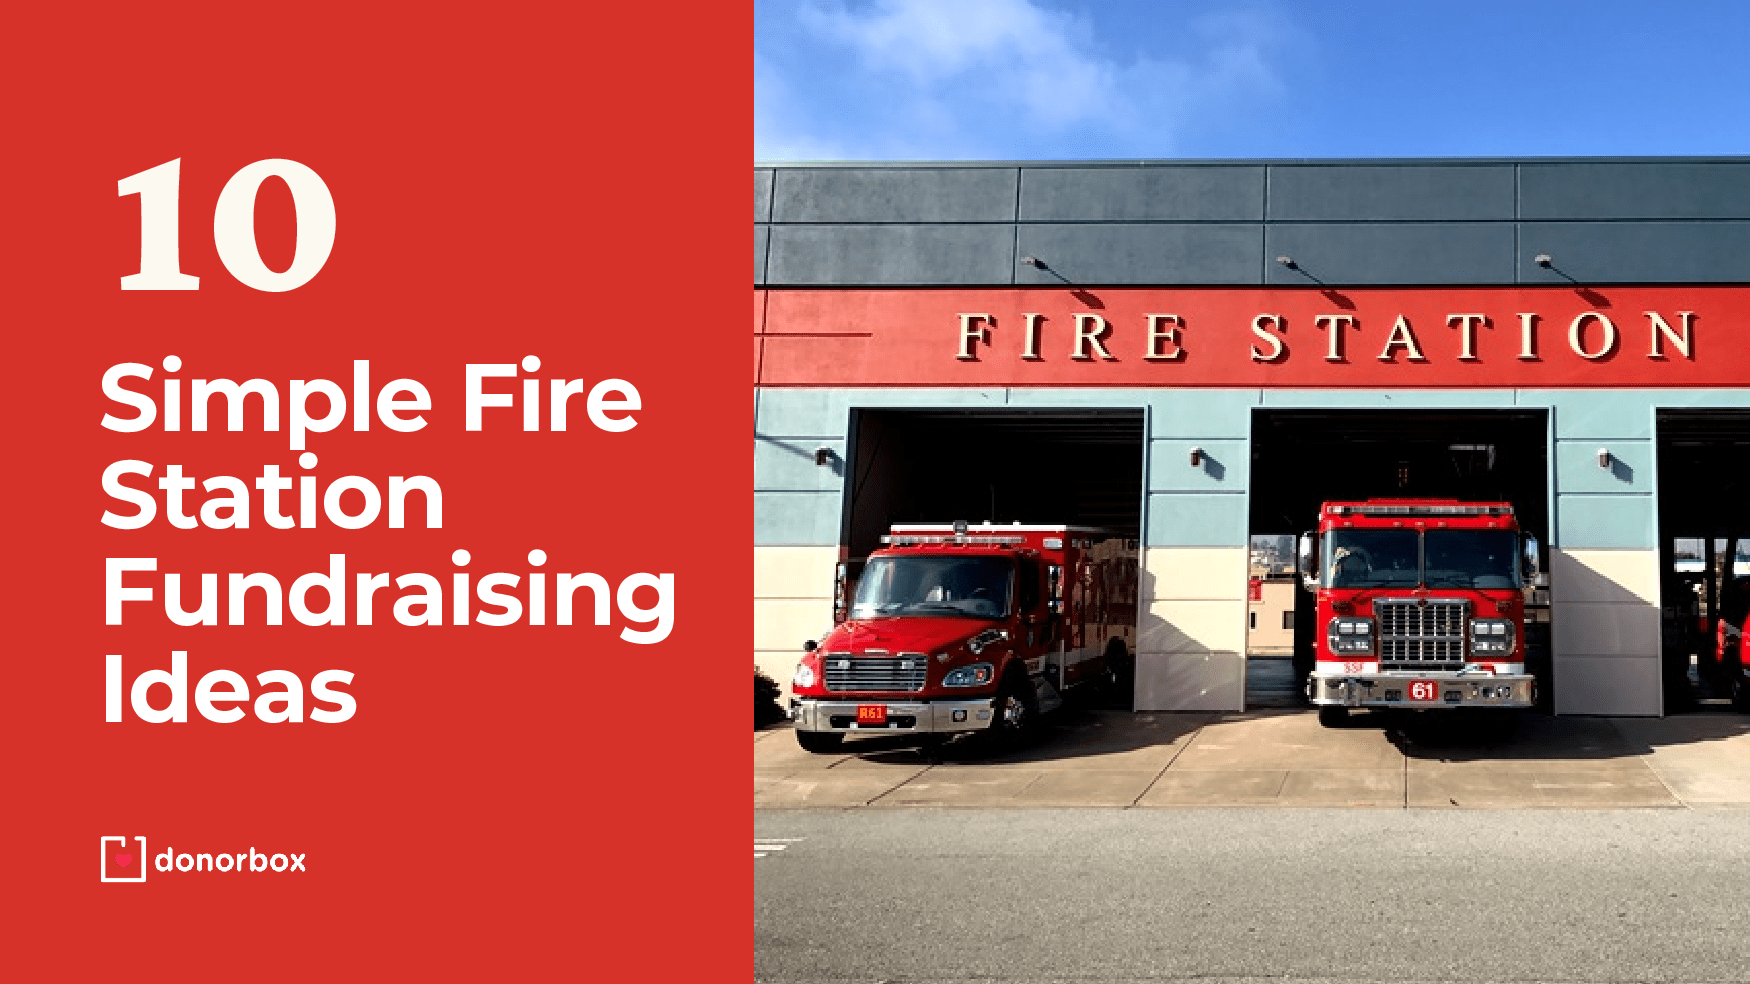 10 Simple and Effective Fundraising Ideas for Fire Station